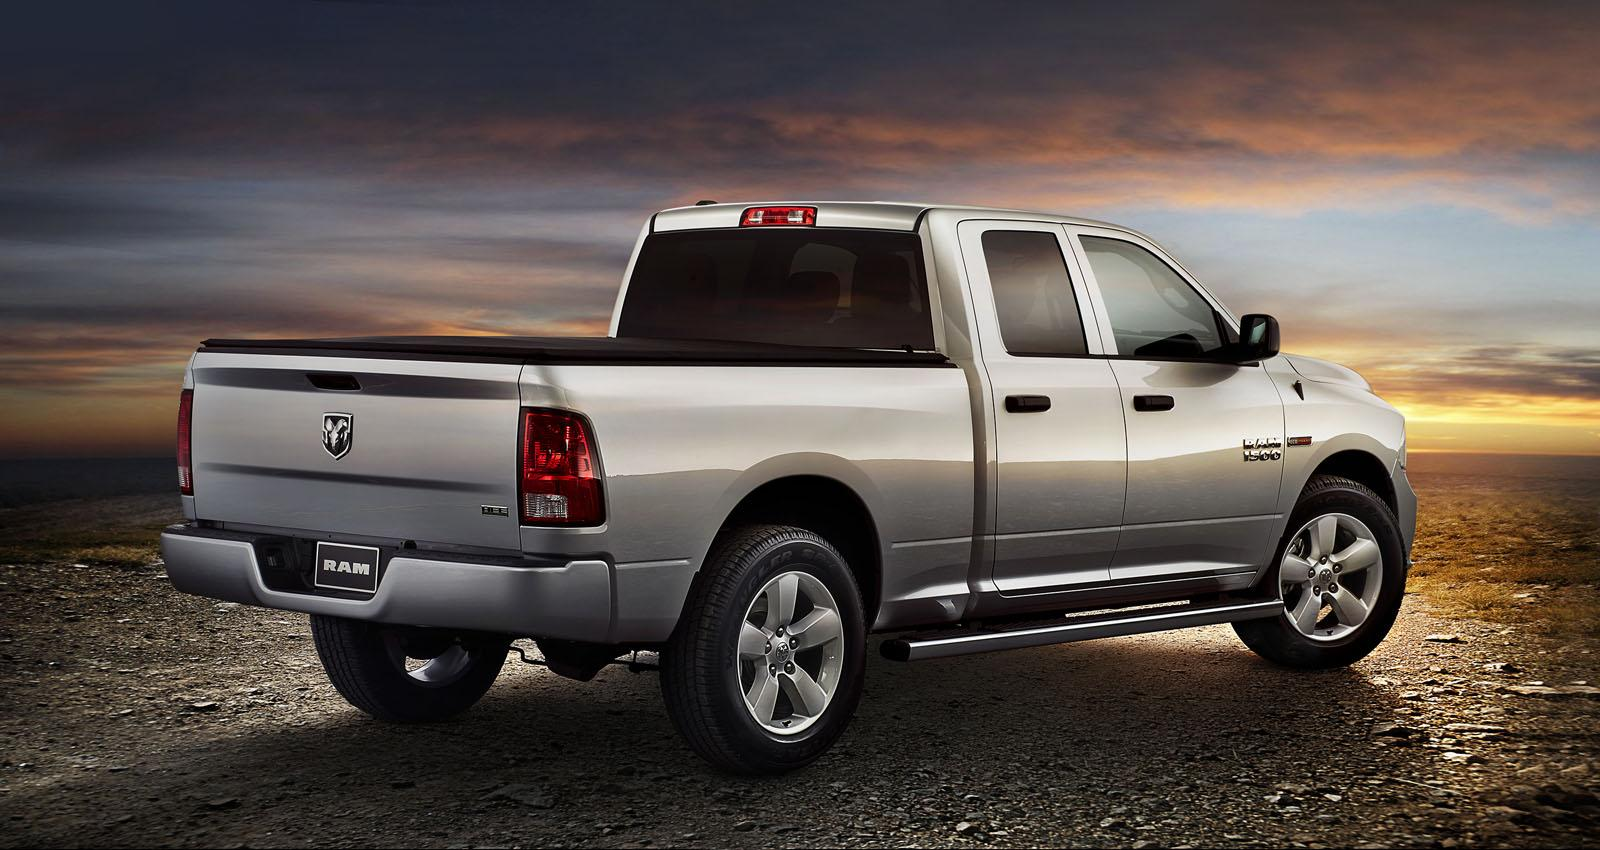 EPA Clears Ram EcoDiesel For Selling, Not The Jeep Grand ...